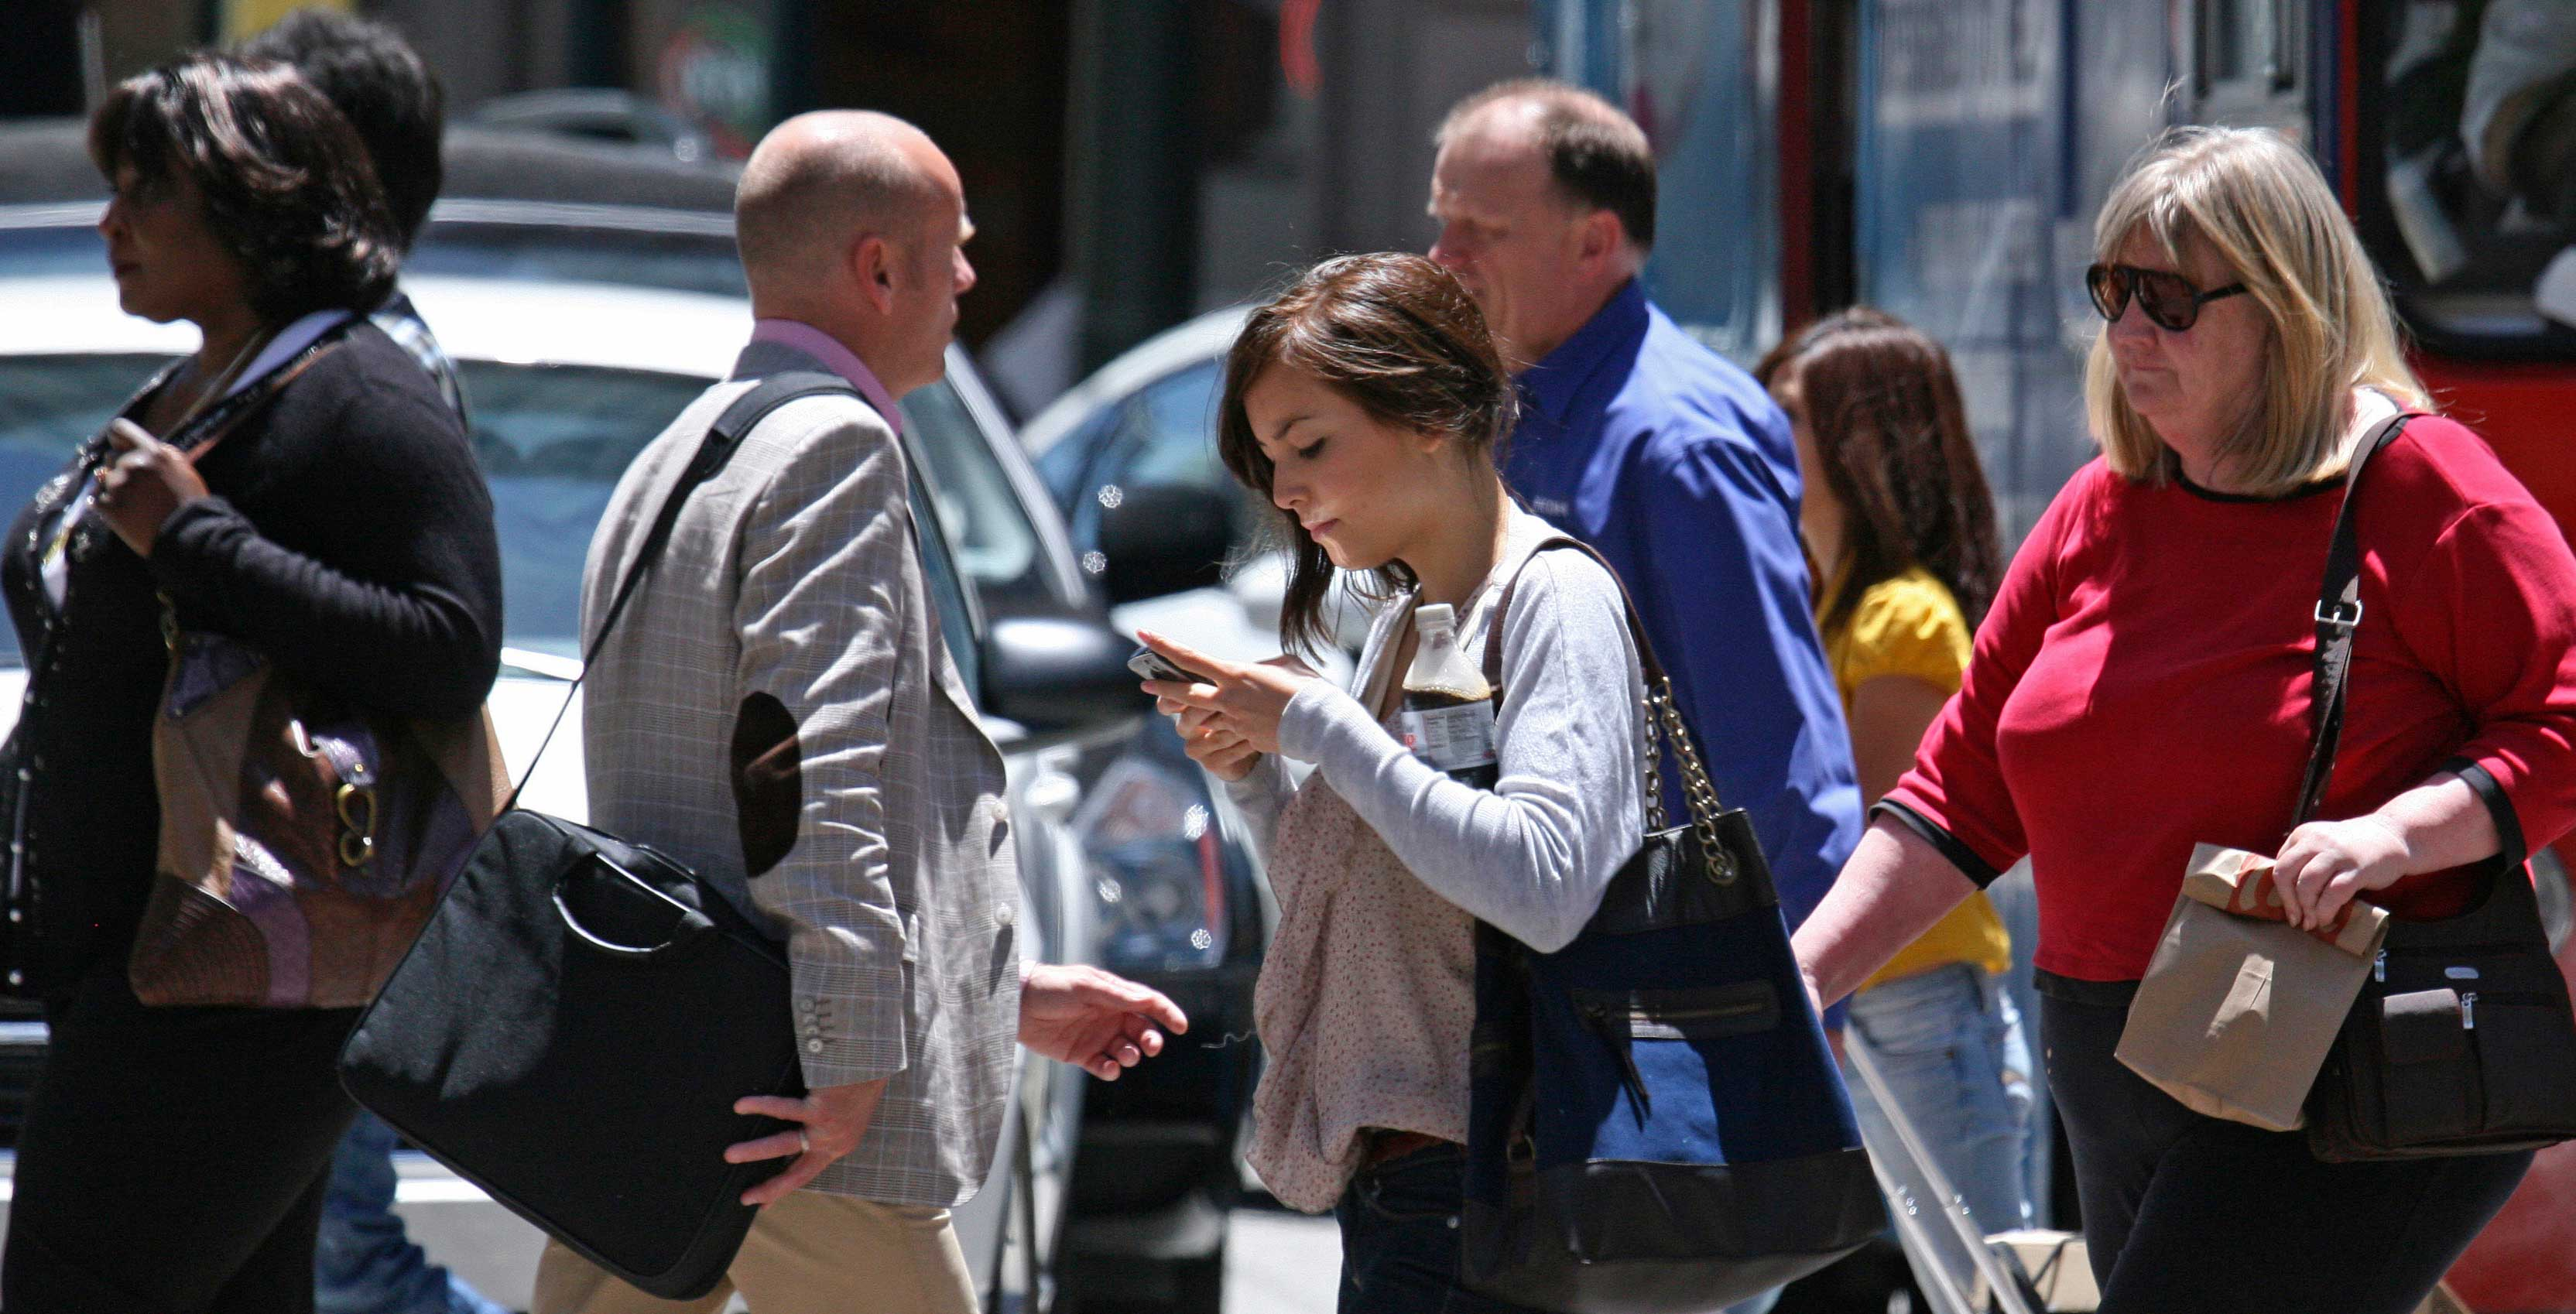 An image showing a woman looking at her phone while crossing the street